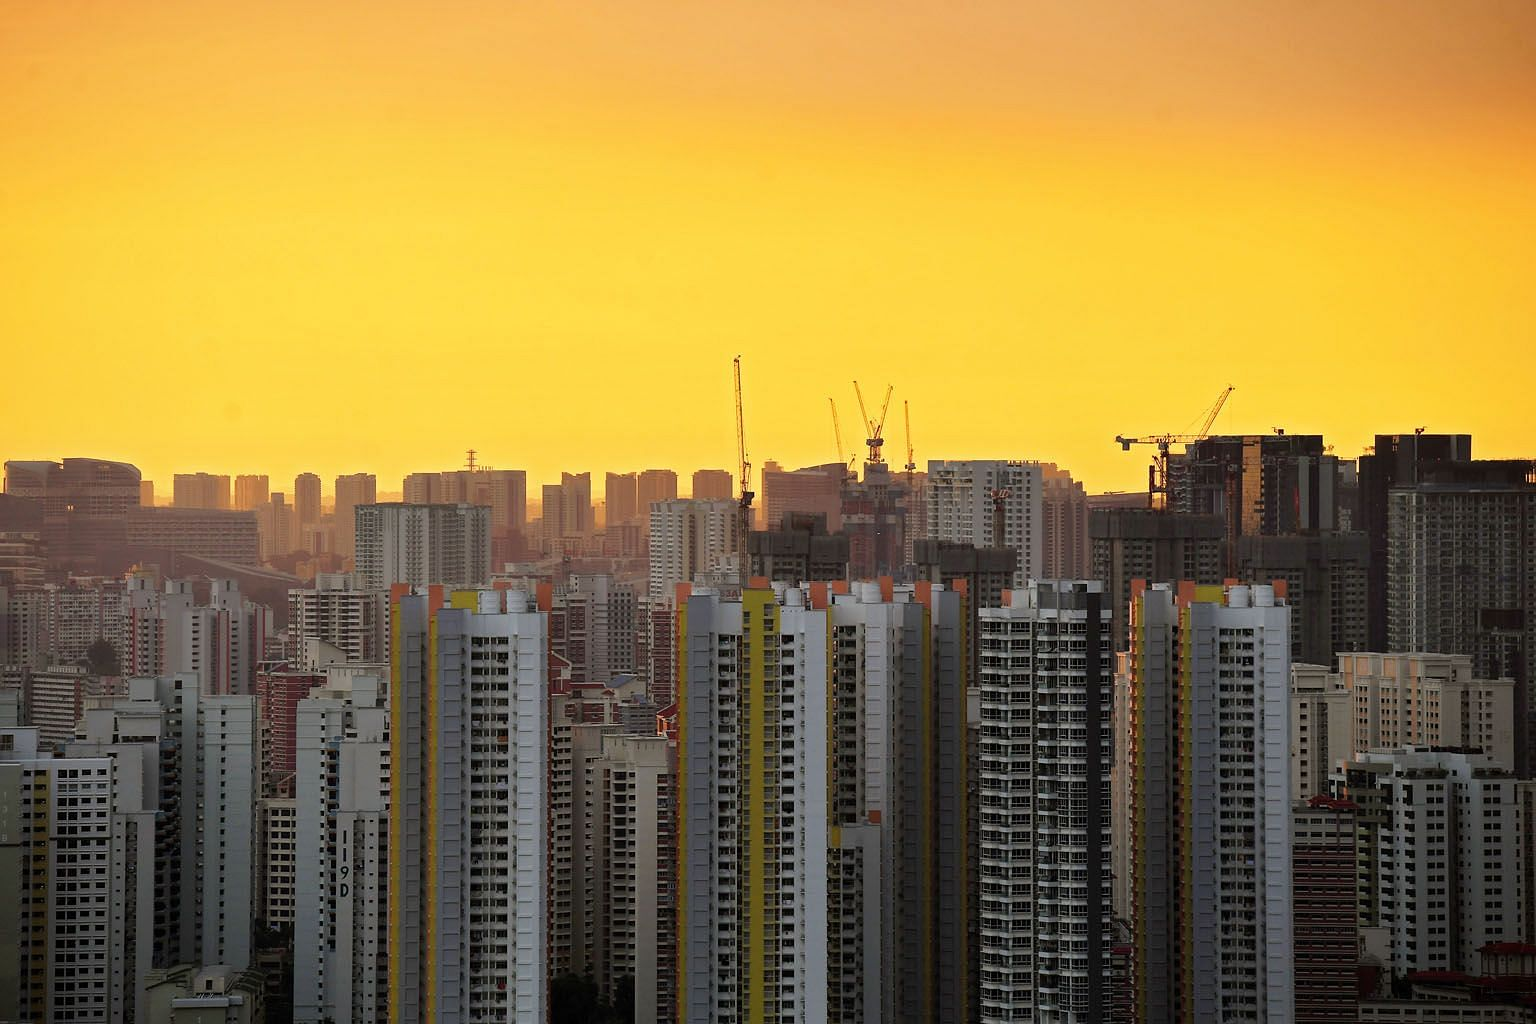 For many house-hunters, location is key. This could mean proximity to their parents, or a shorter distance to the Central Business District, their workplace or the nearest MRT station.